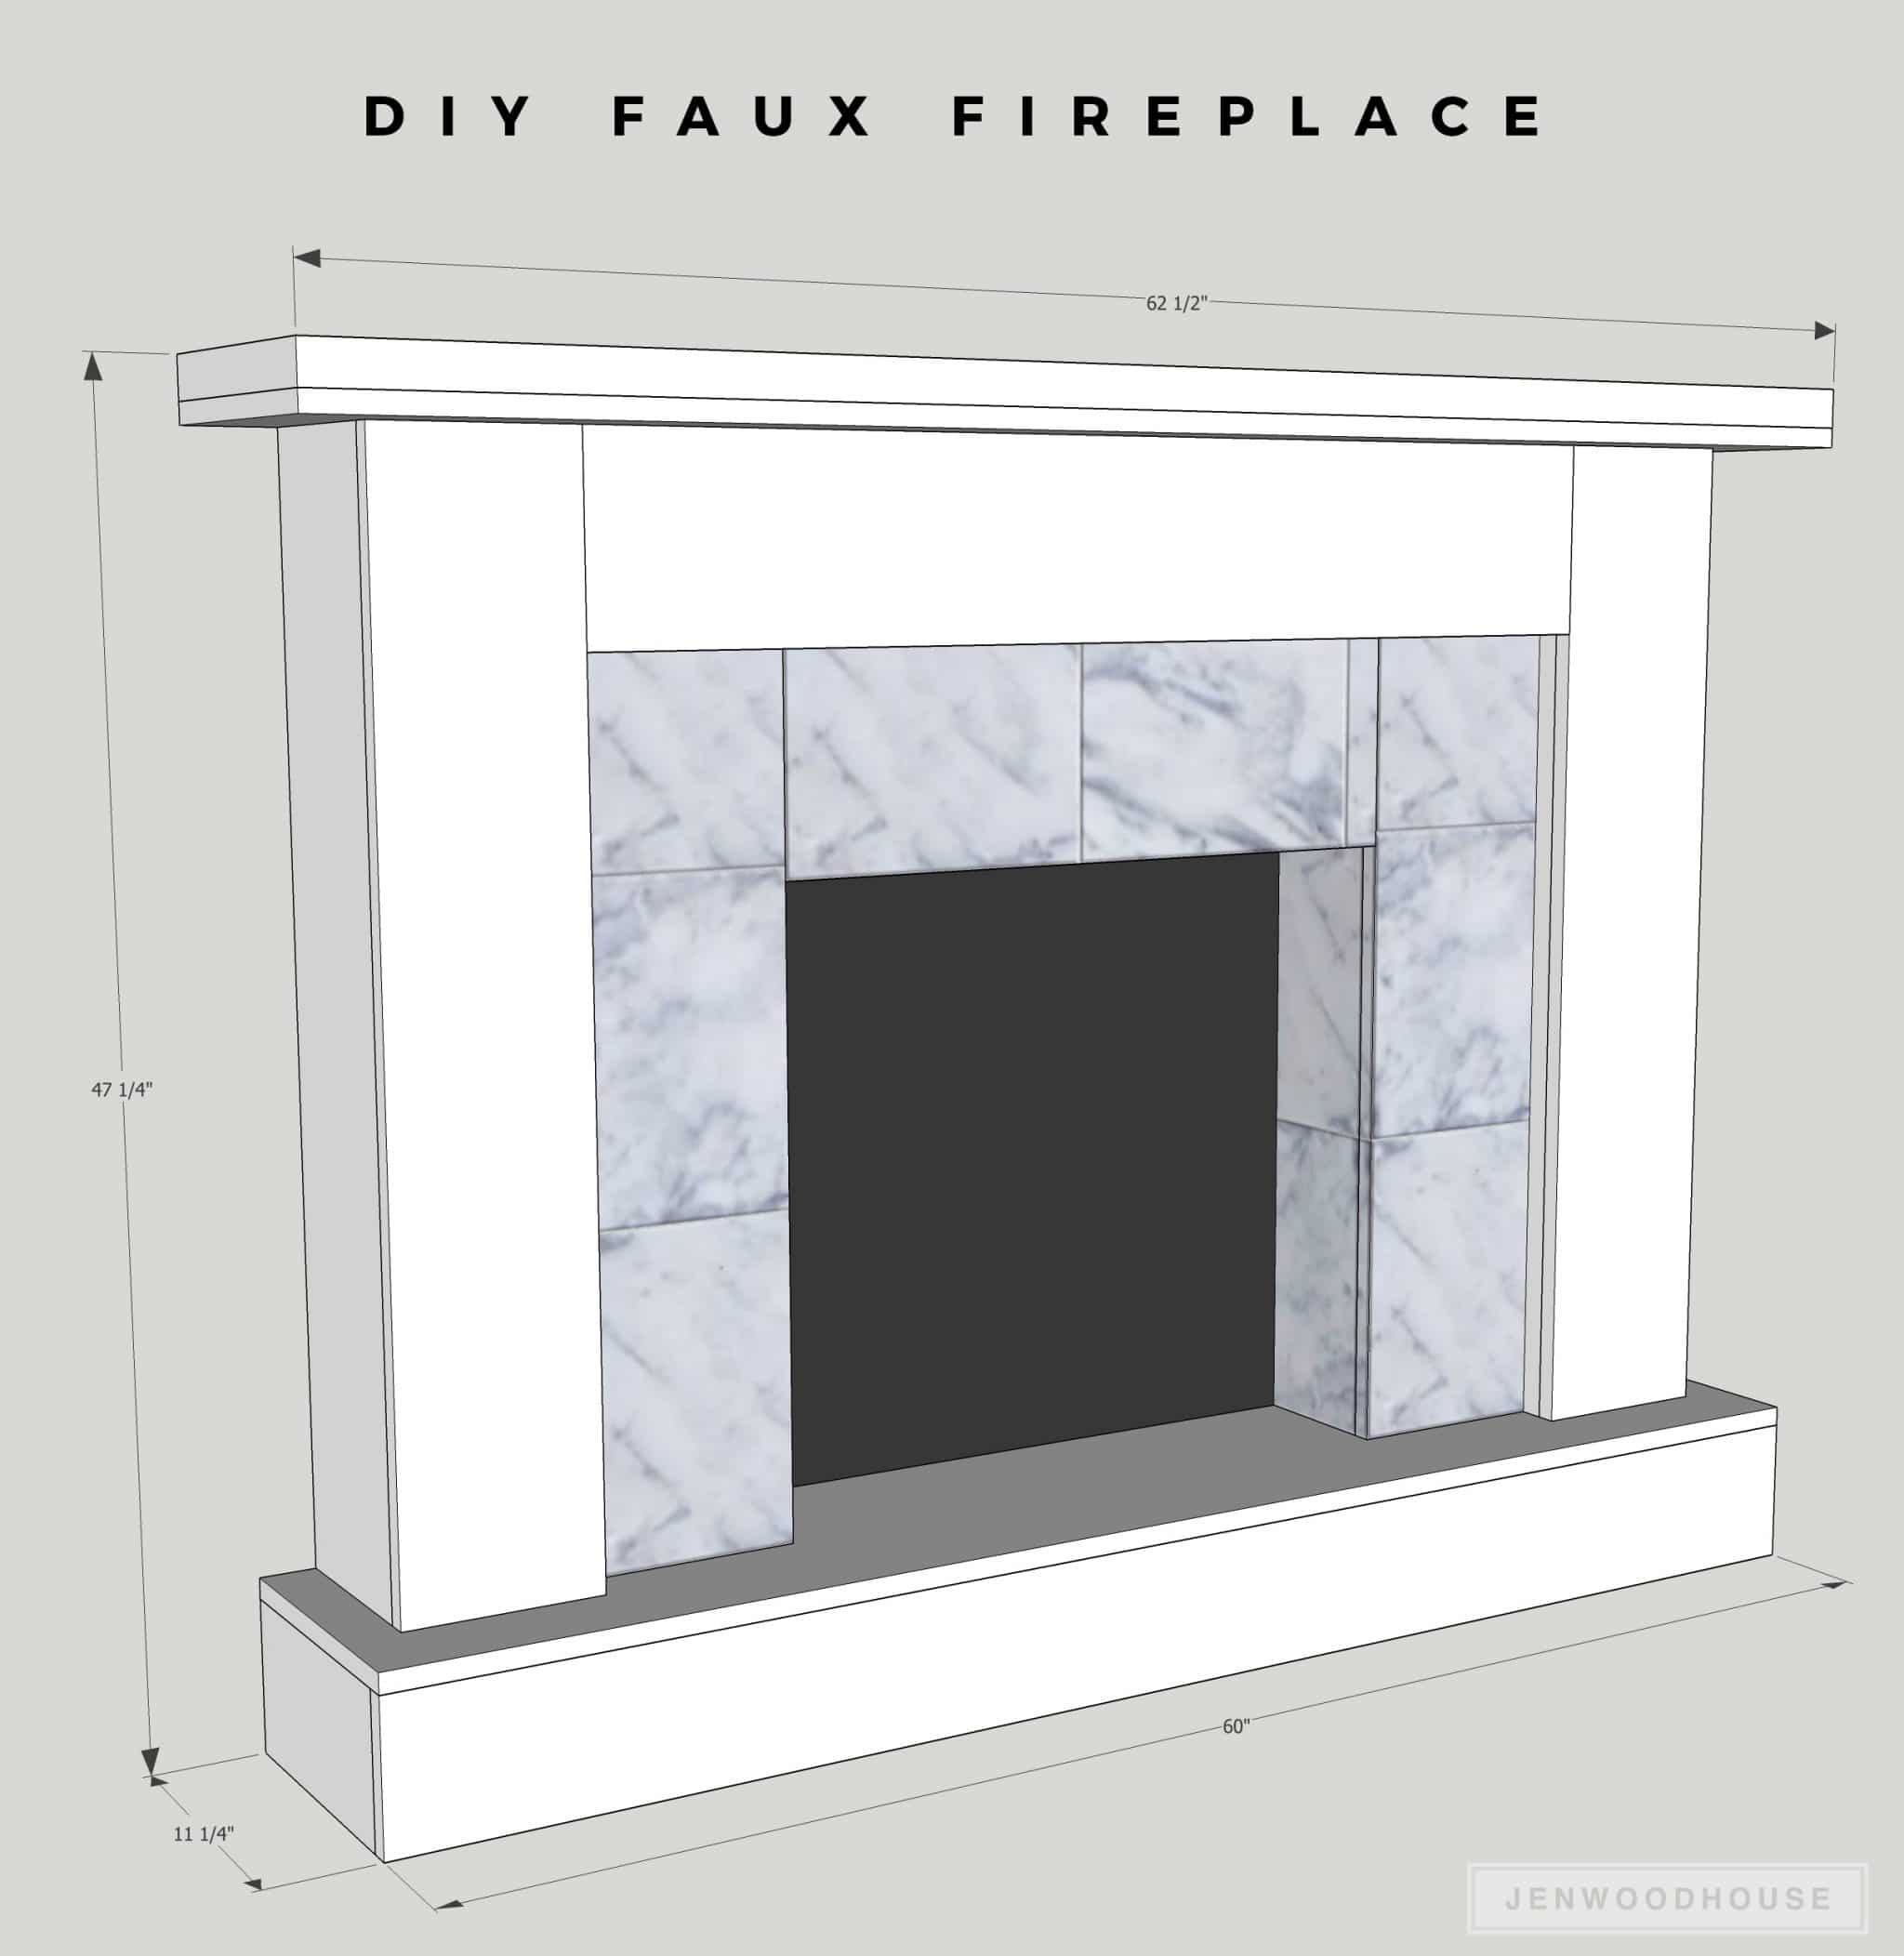 DIY Faux Fireplace Featuring Smart Tiles Adhesive Tiles - Learn how to build a DIY faux fireplace with peel-and-stick tiles! A renter-friendly solution!